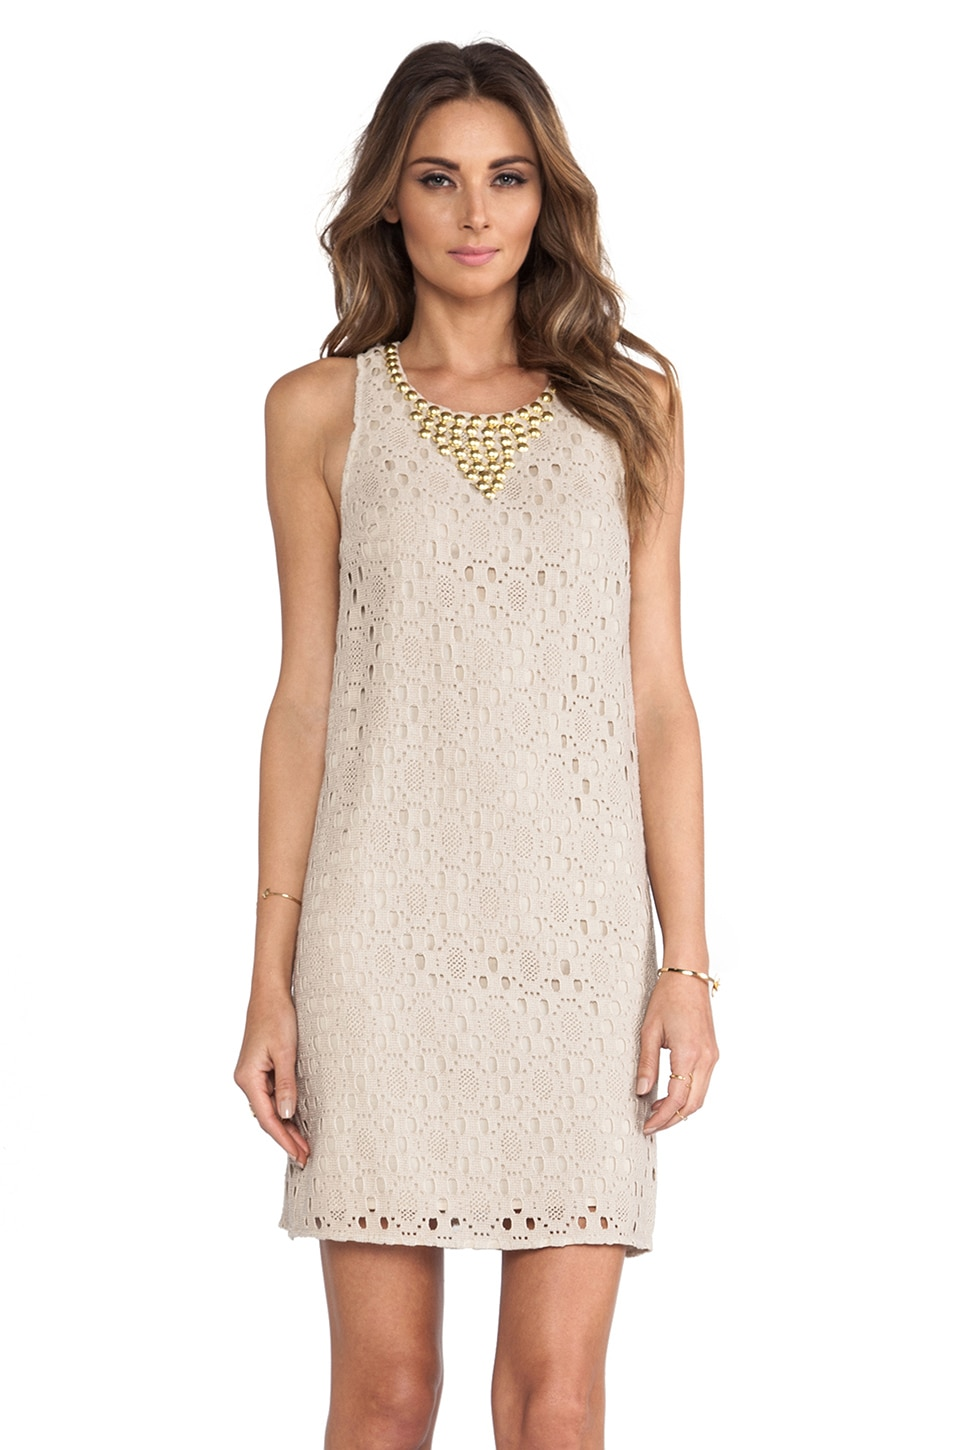 Trina Turk Avalon Dress in Driftwood